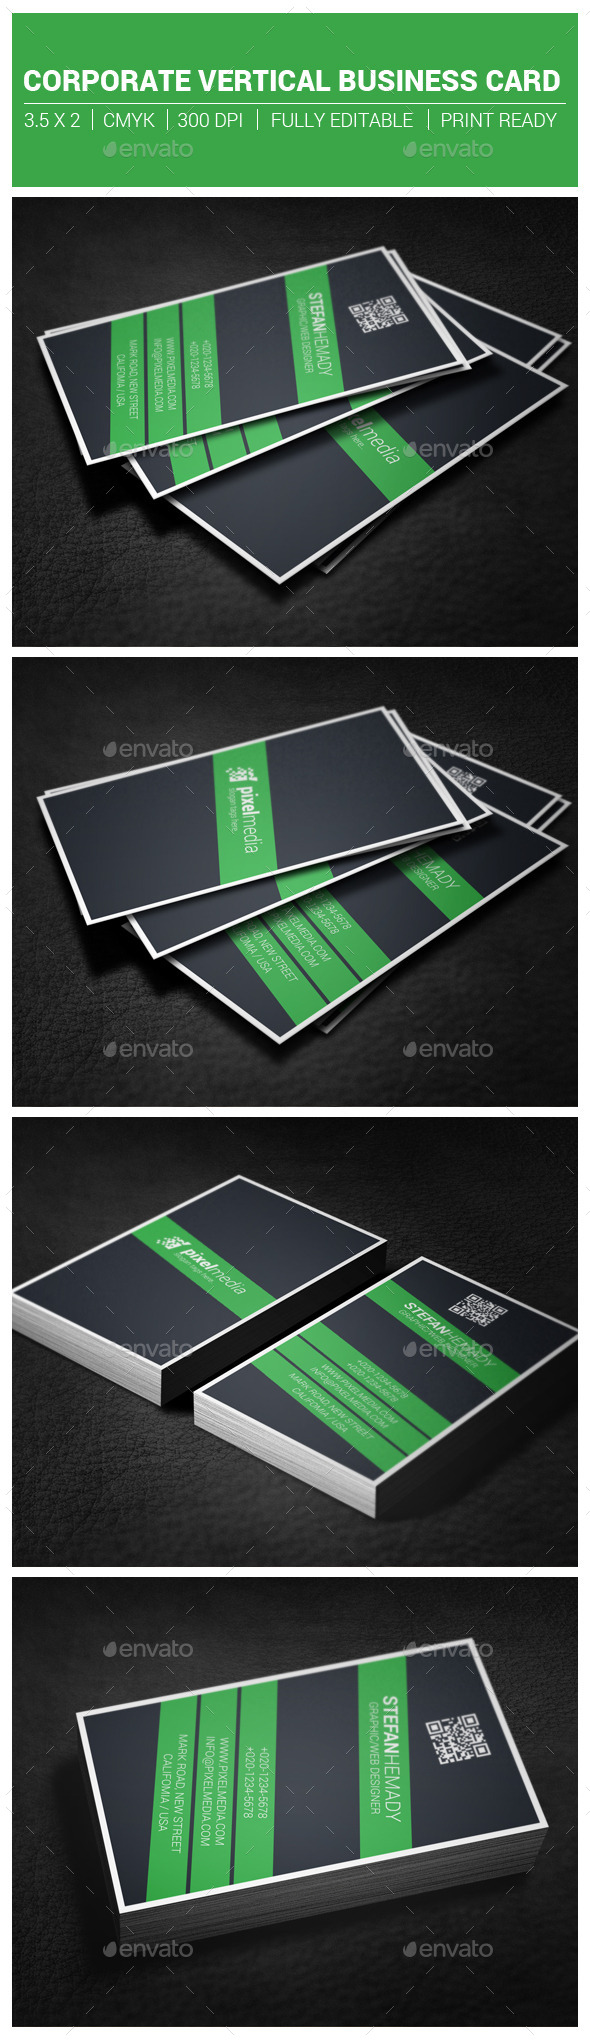 GraphicRiver Corporate Vertical Business Card 10302999